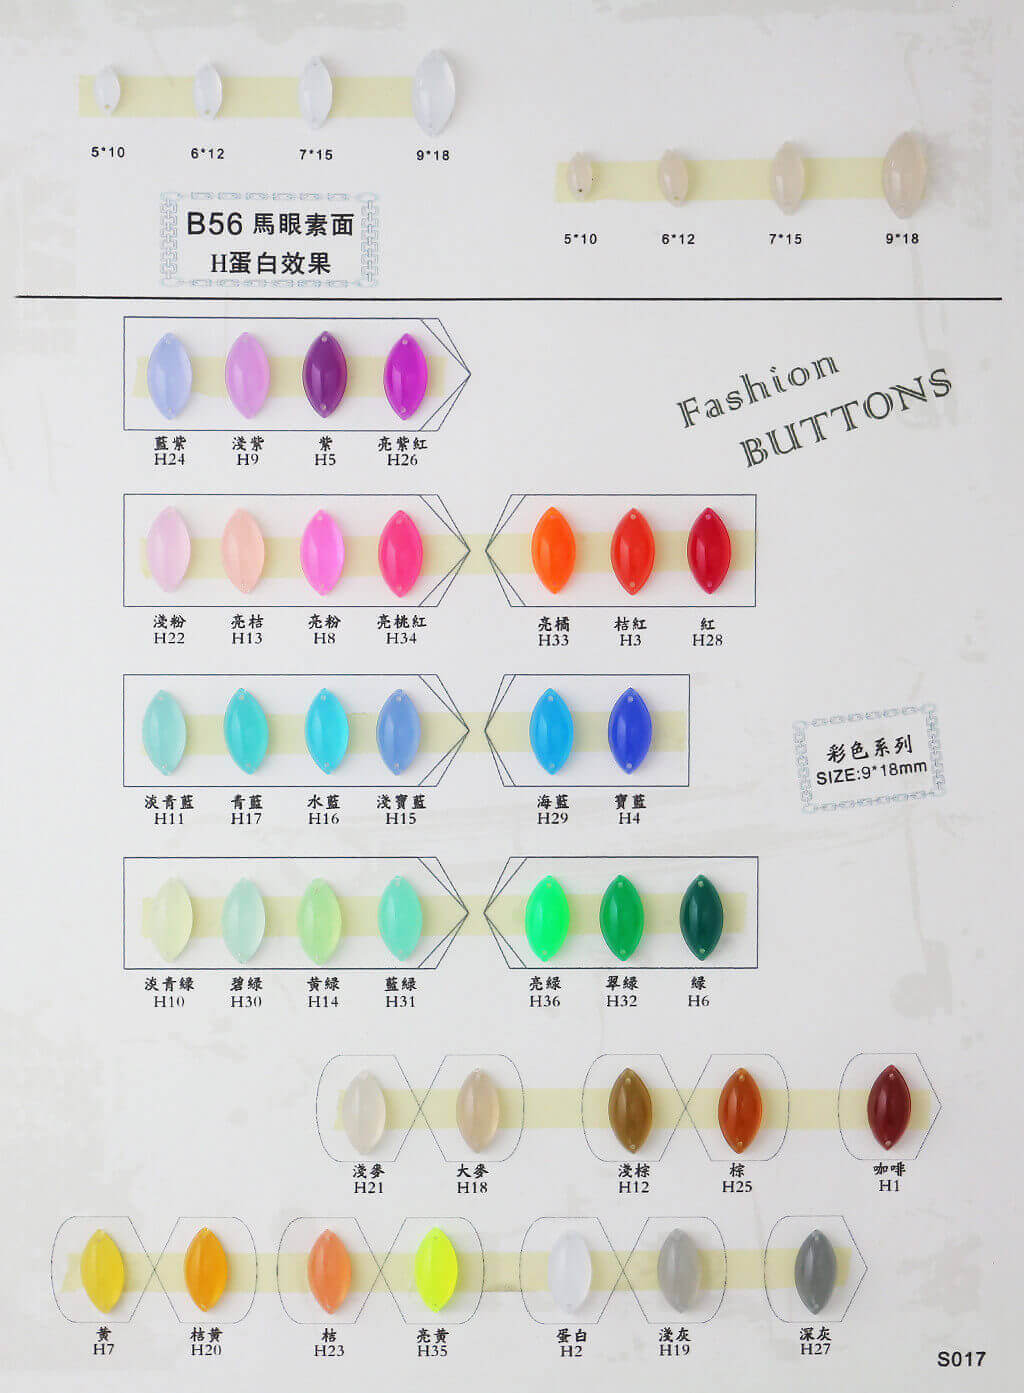 sew on stones catalogue-SB56-H